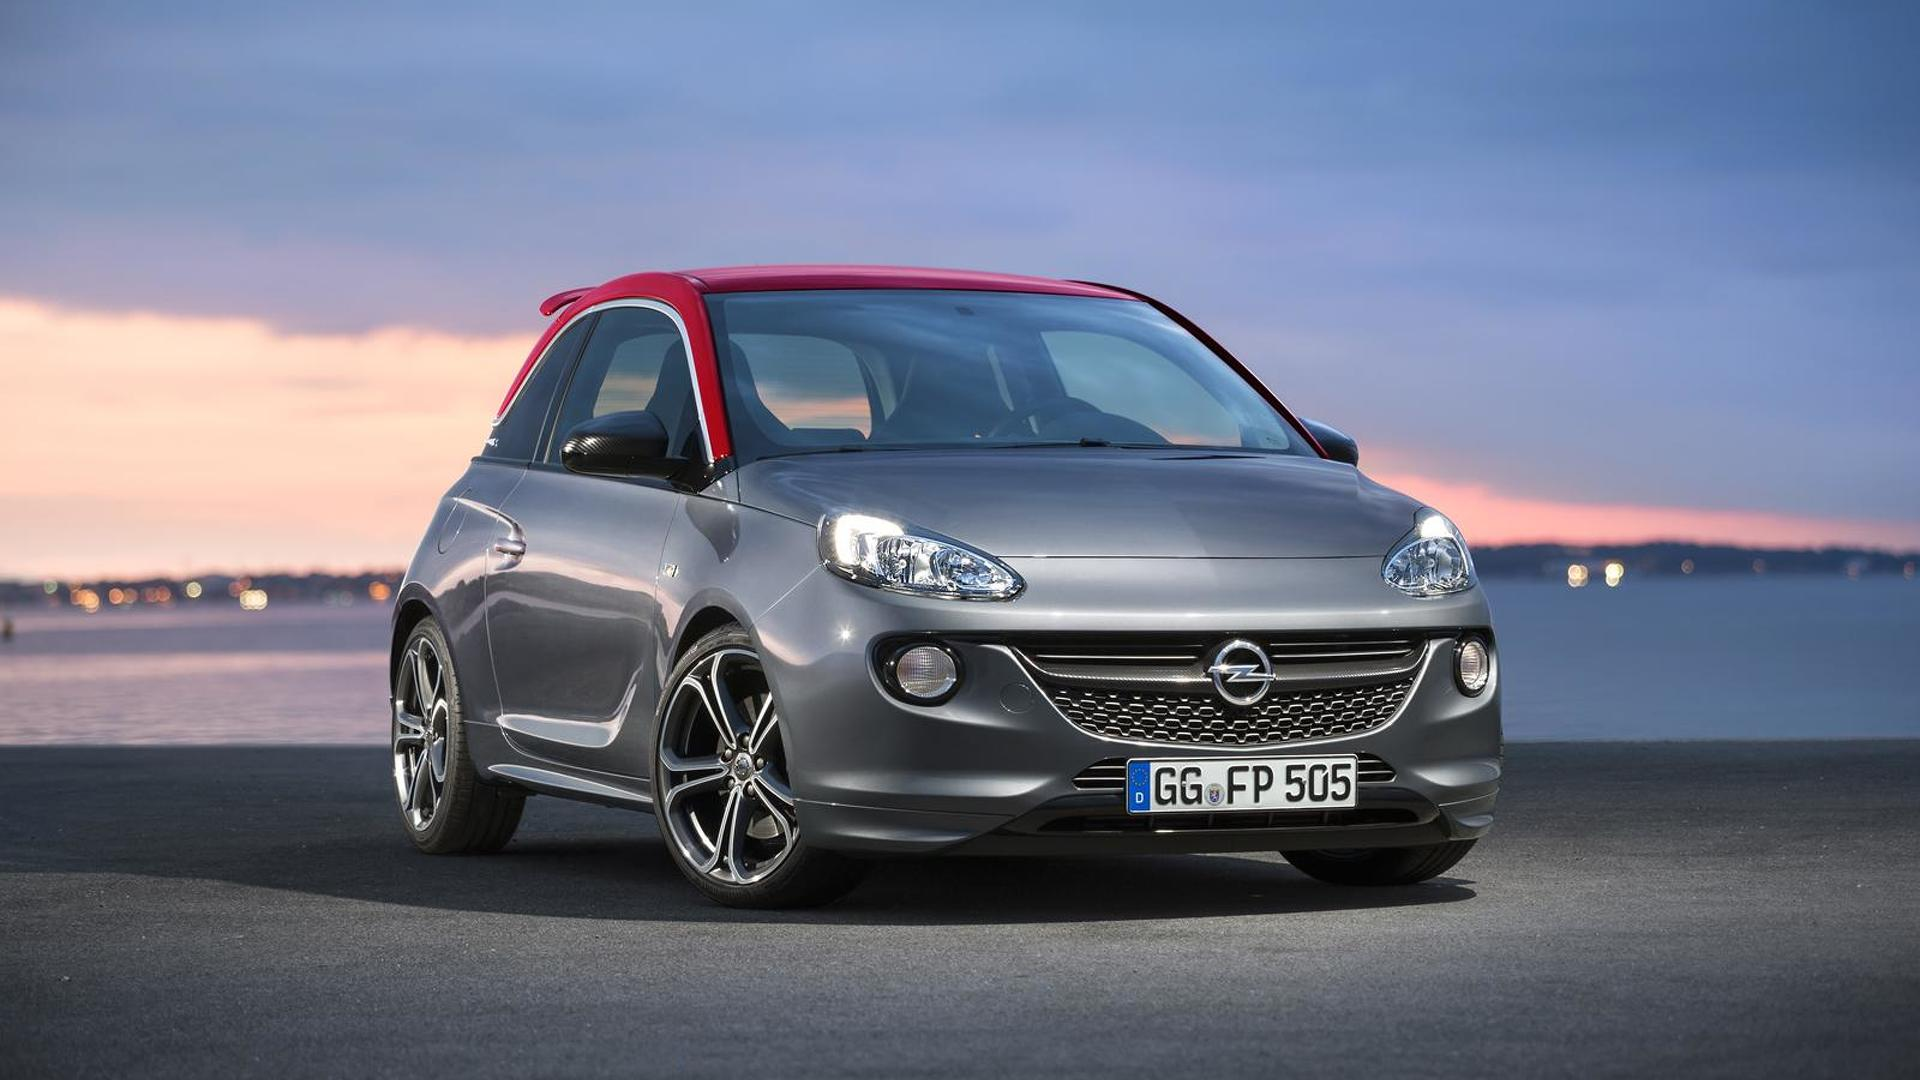 Opel Adam S priced from €18,690 in Germany